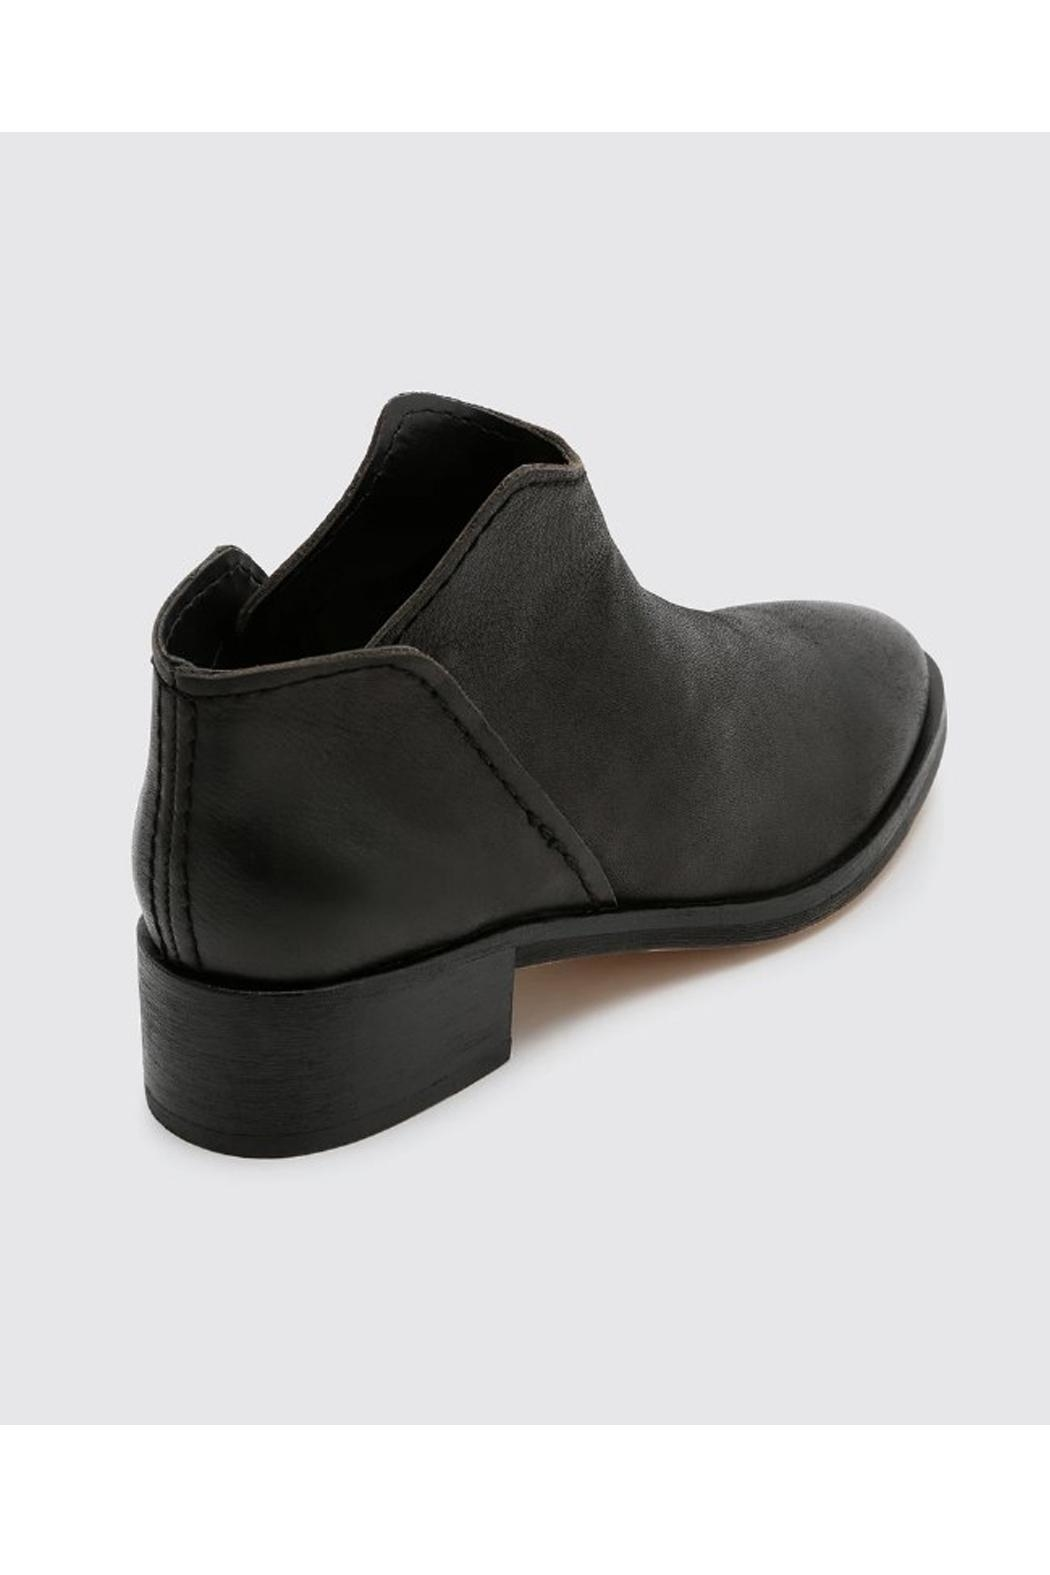 Dolce Vita Black Leather Bootie - Front Full Image